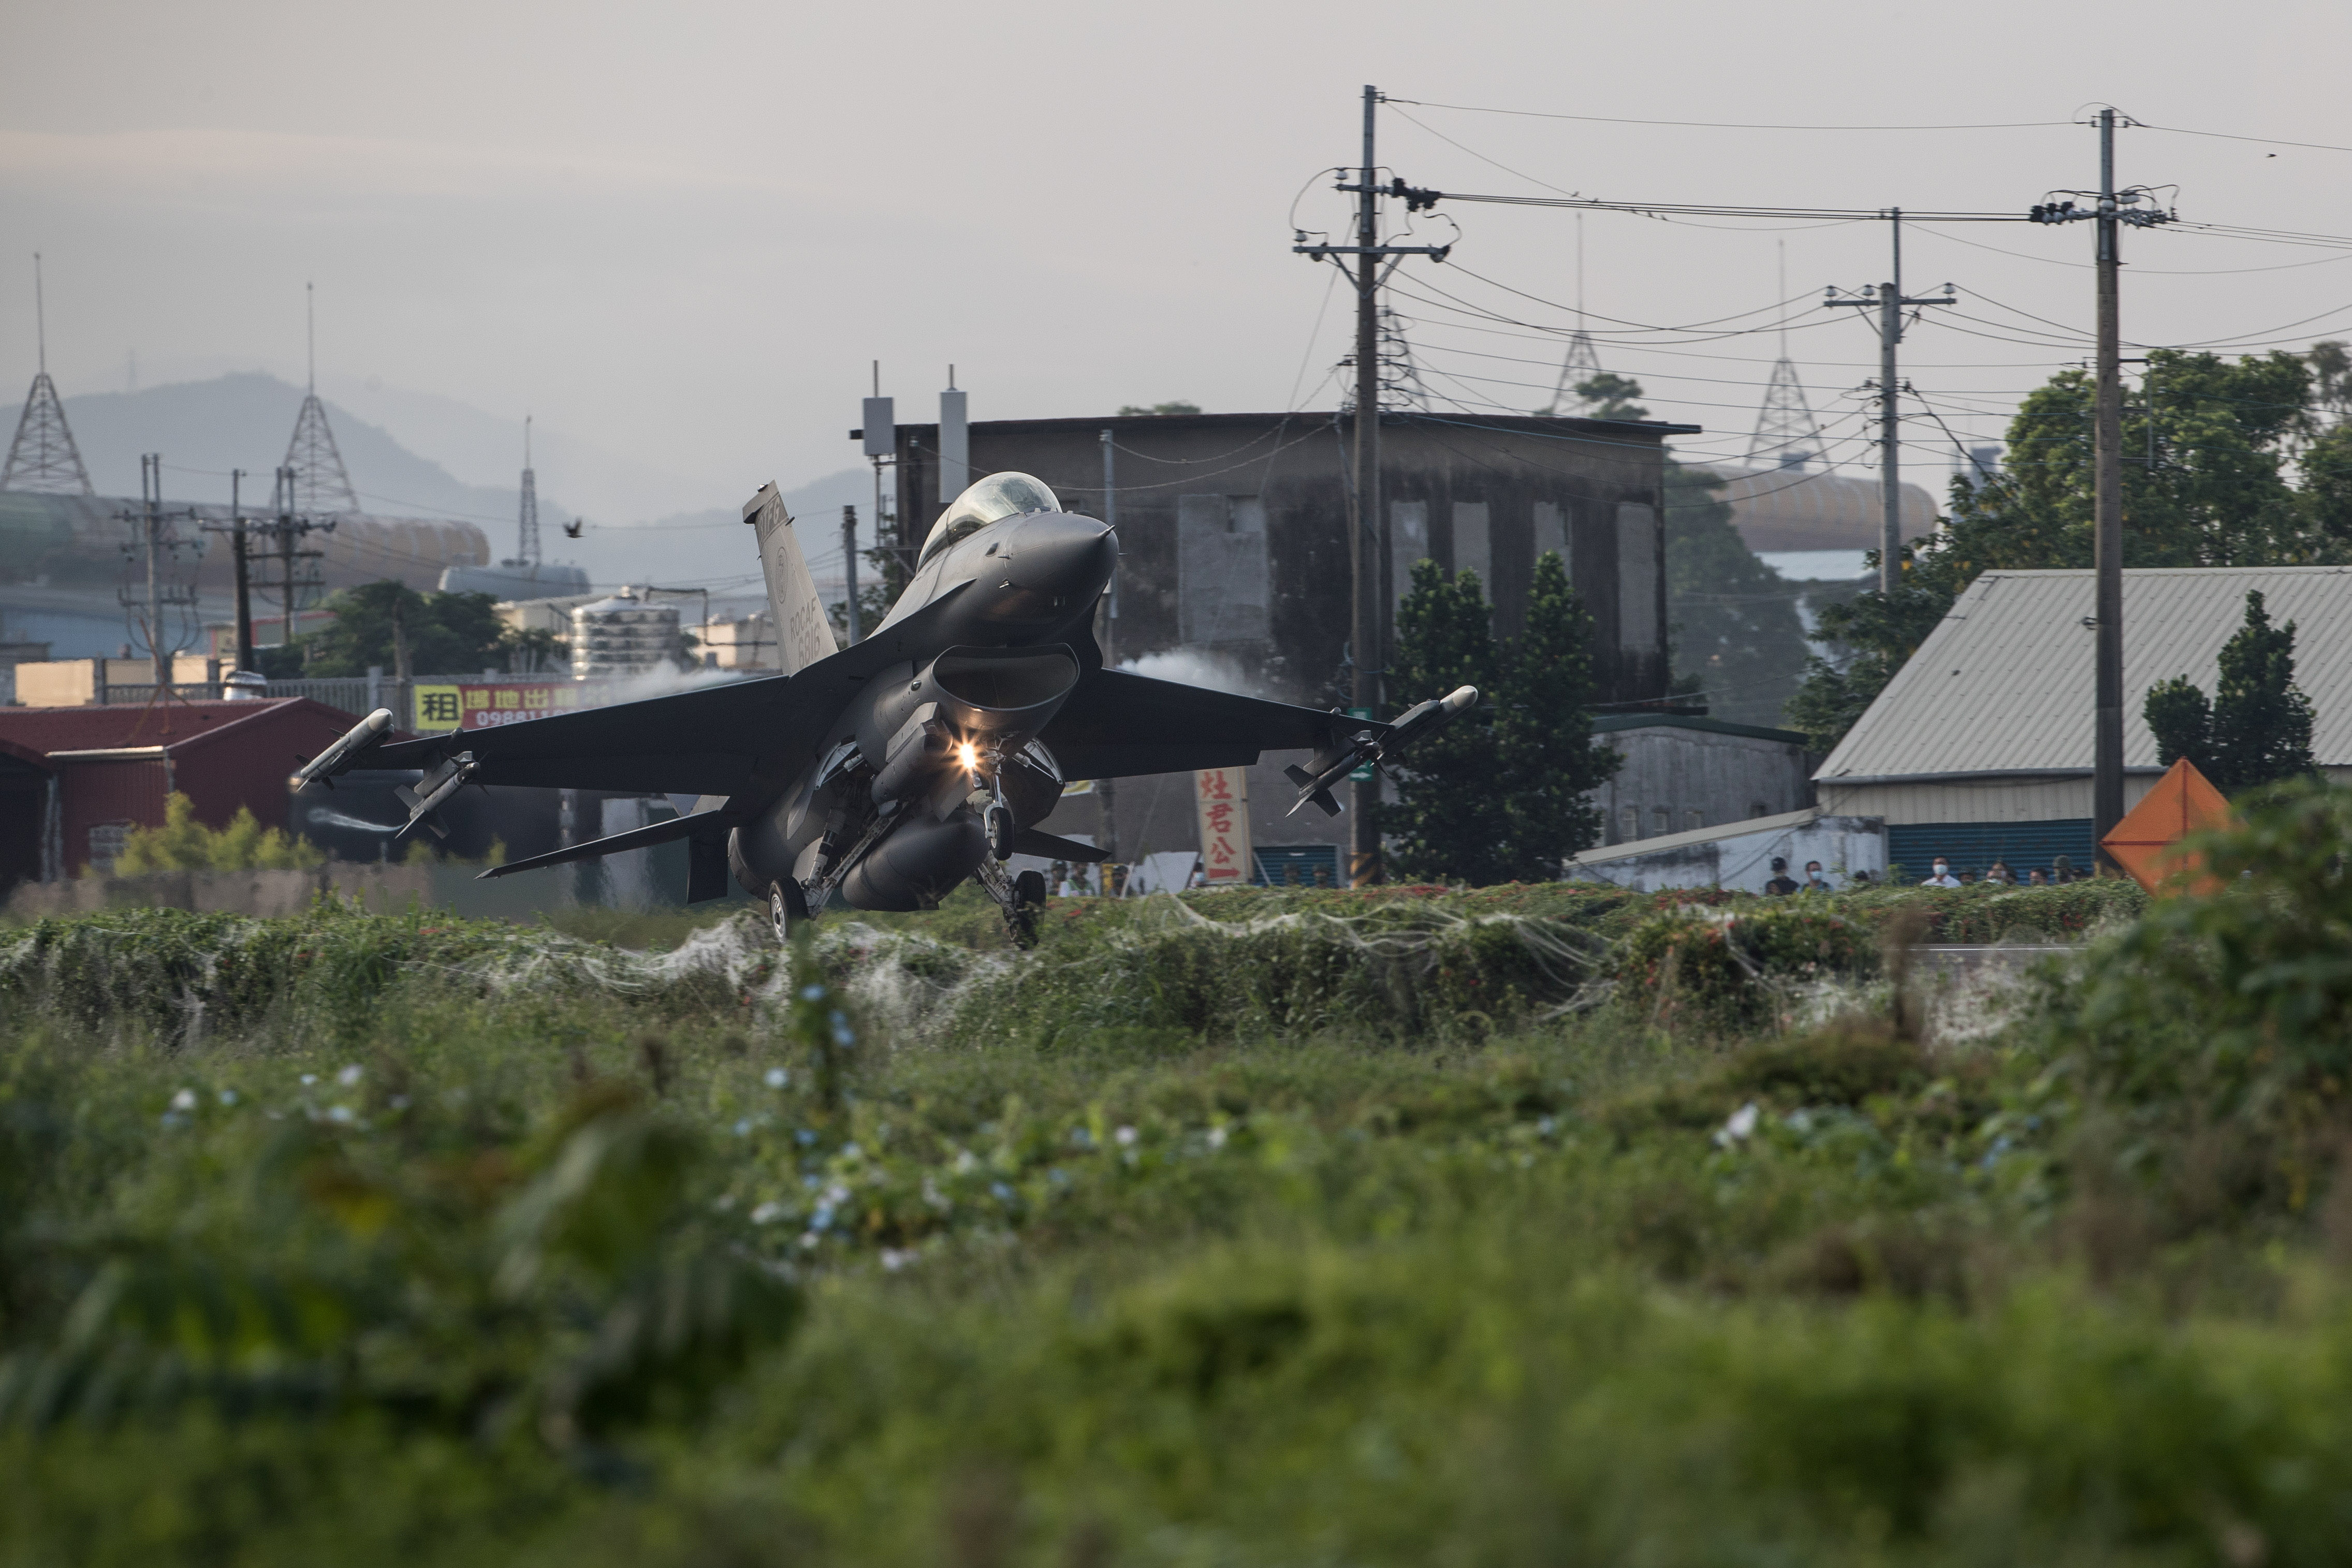 A Taiwanese Air Force F-16V fighter jet takes off on a highway that is converted as a runway, during the take-off and landing drill as part of the annual Han Kuang drill in Pingtung, Taiwan, 15 September 2021. TAIWAN MILITARY NEWS AGENCY/Handout via REUTERS